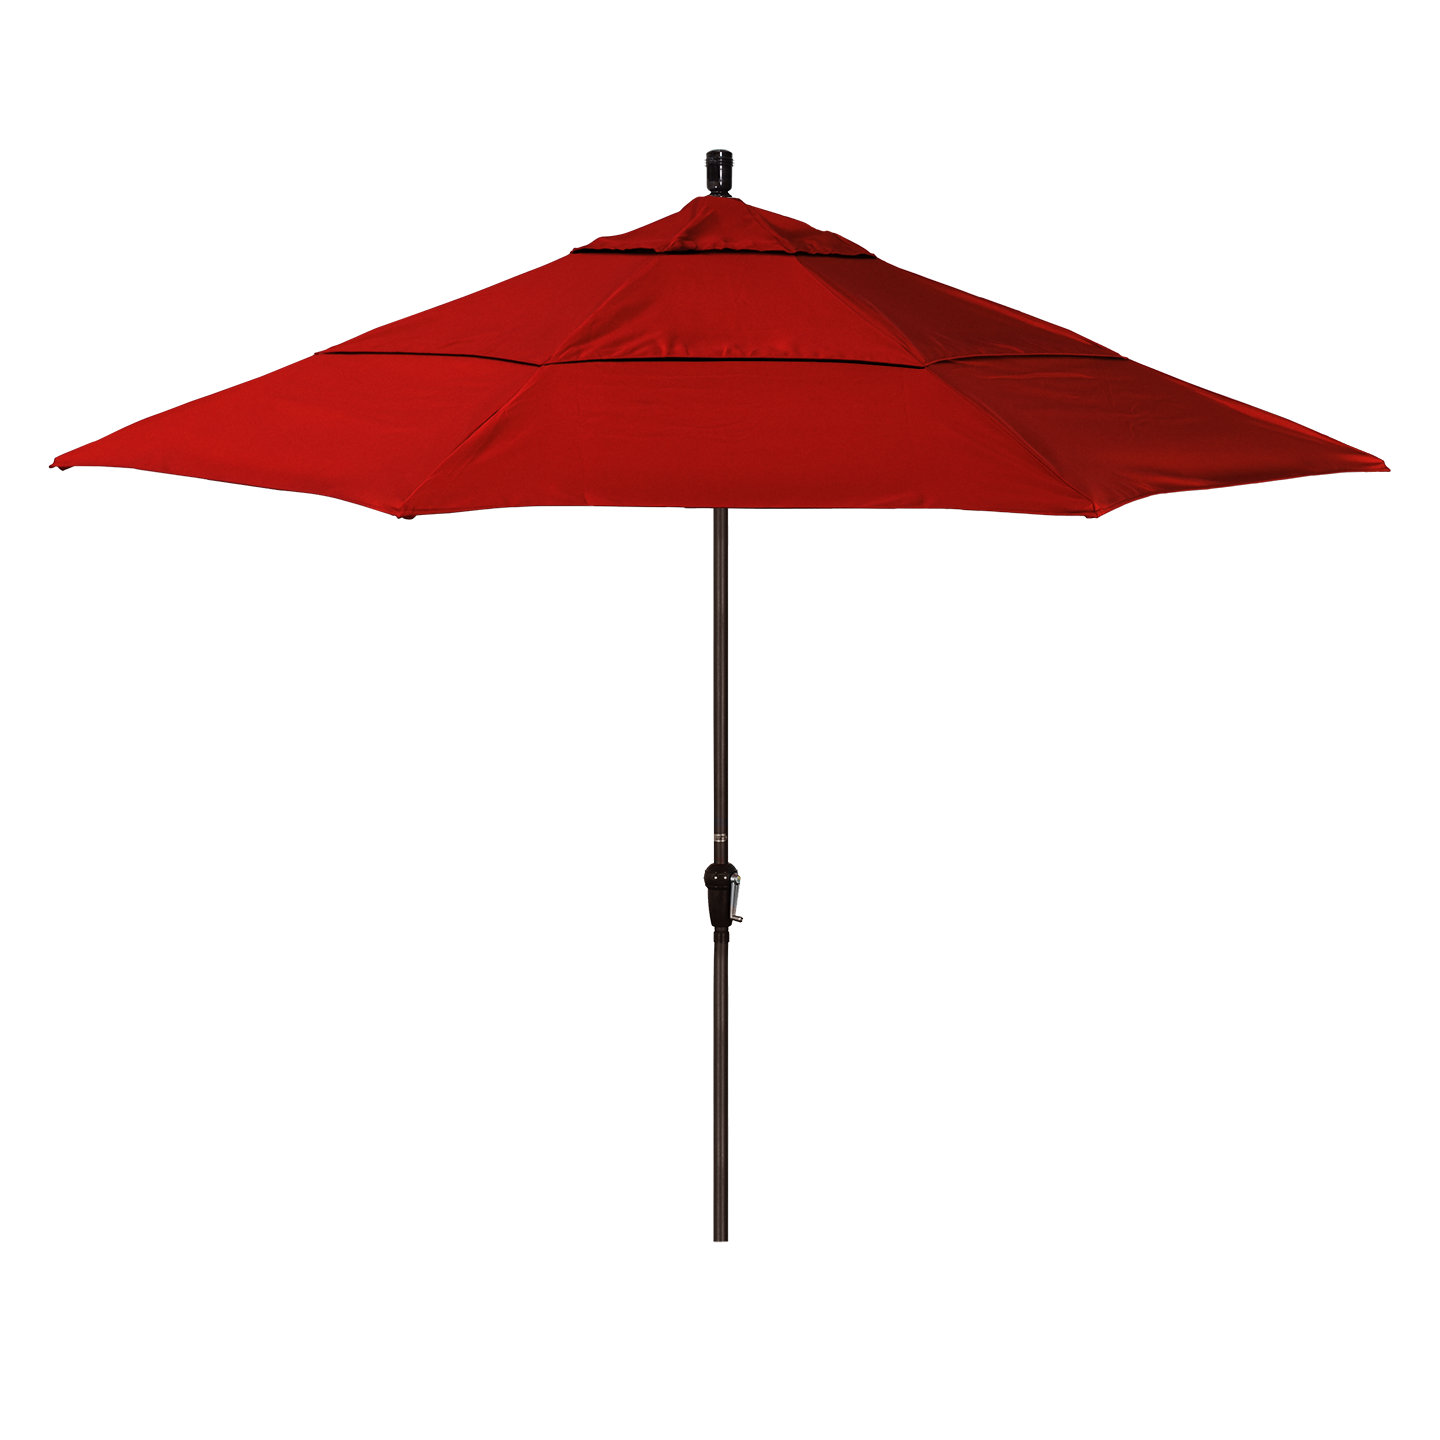 11' Traditional Outdoor Umbrella with Double Wind Vents